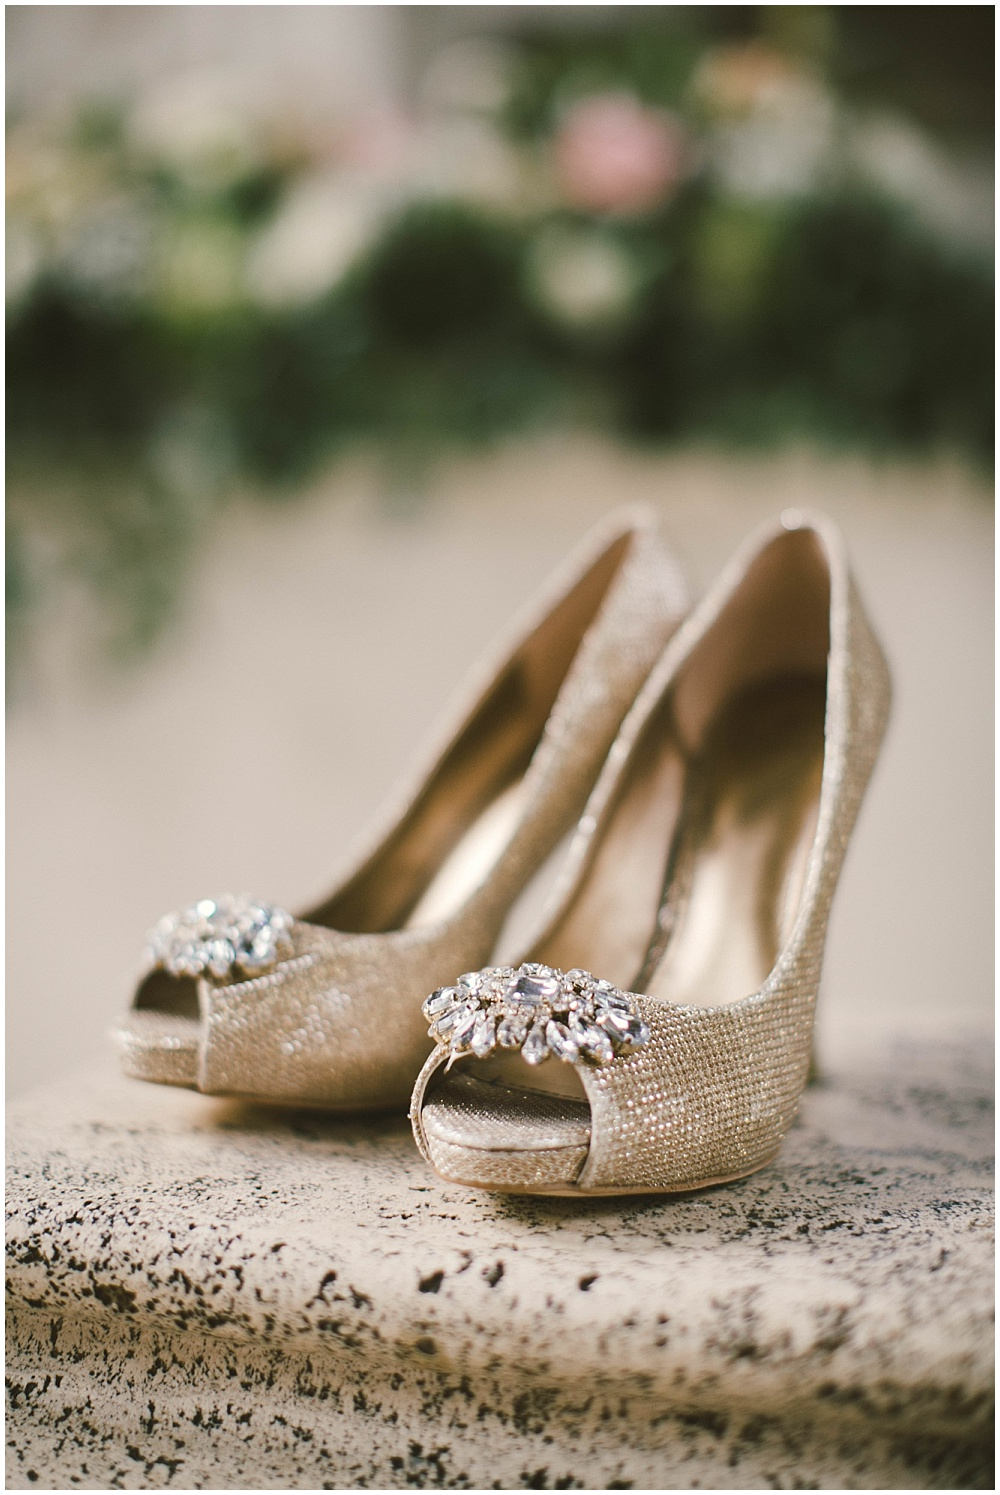 Gold wedding shoes | Indianapolis Central Library Wedding by Jennifer Van Elk Photography & Jessica Dum Wedding Coordination